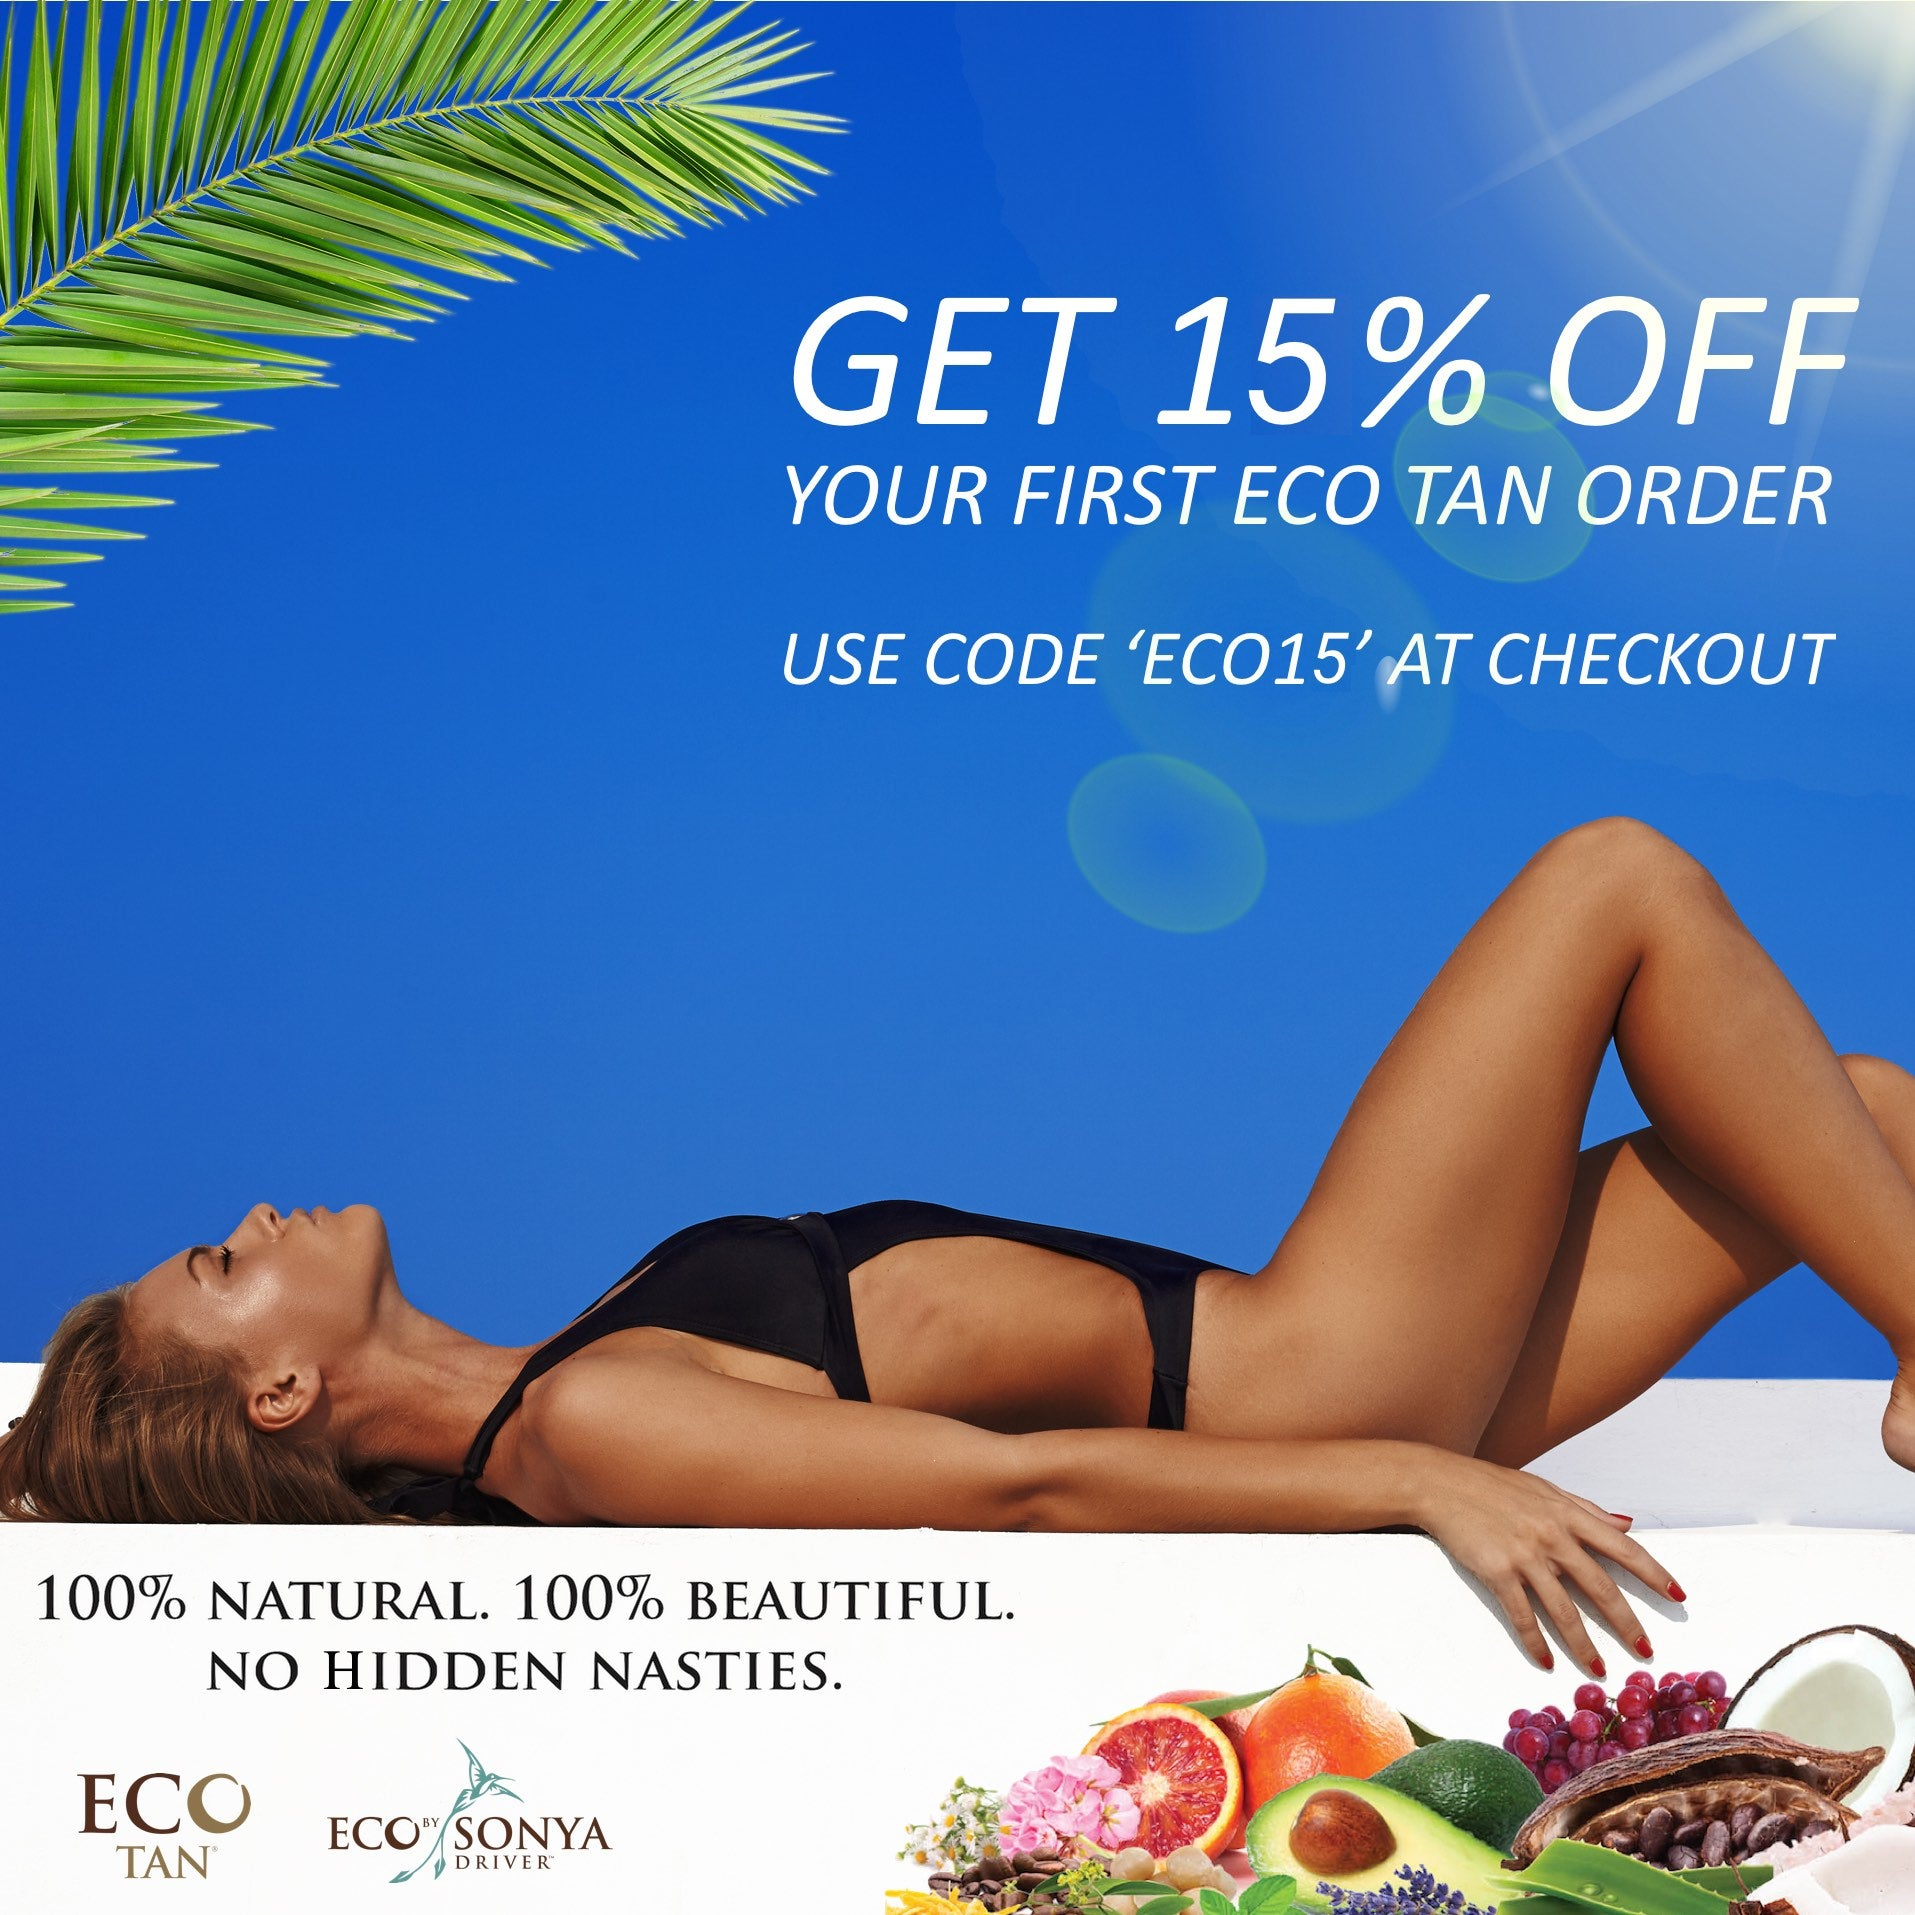 eco tan first order 10% off bella scoop